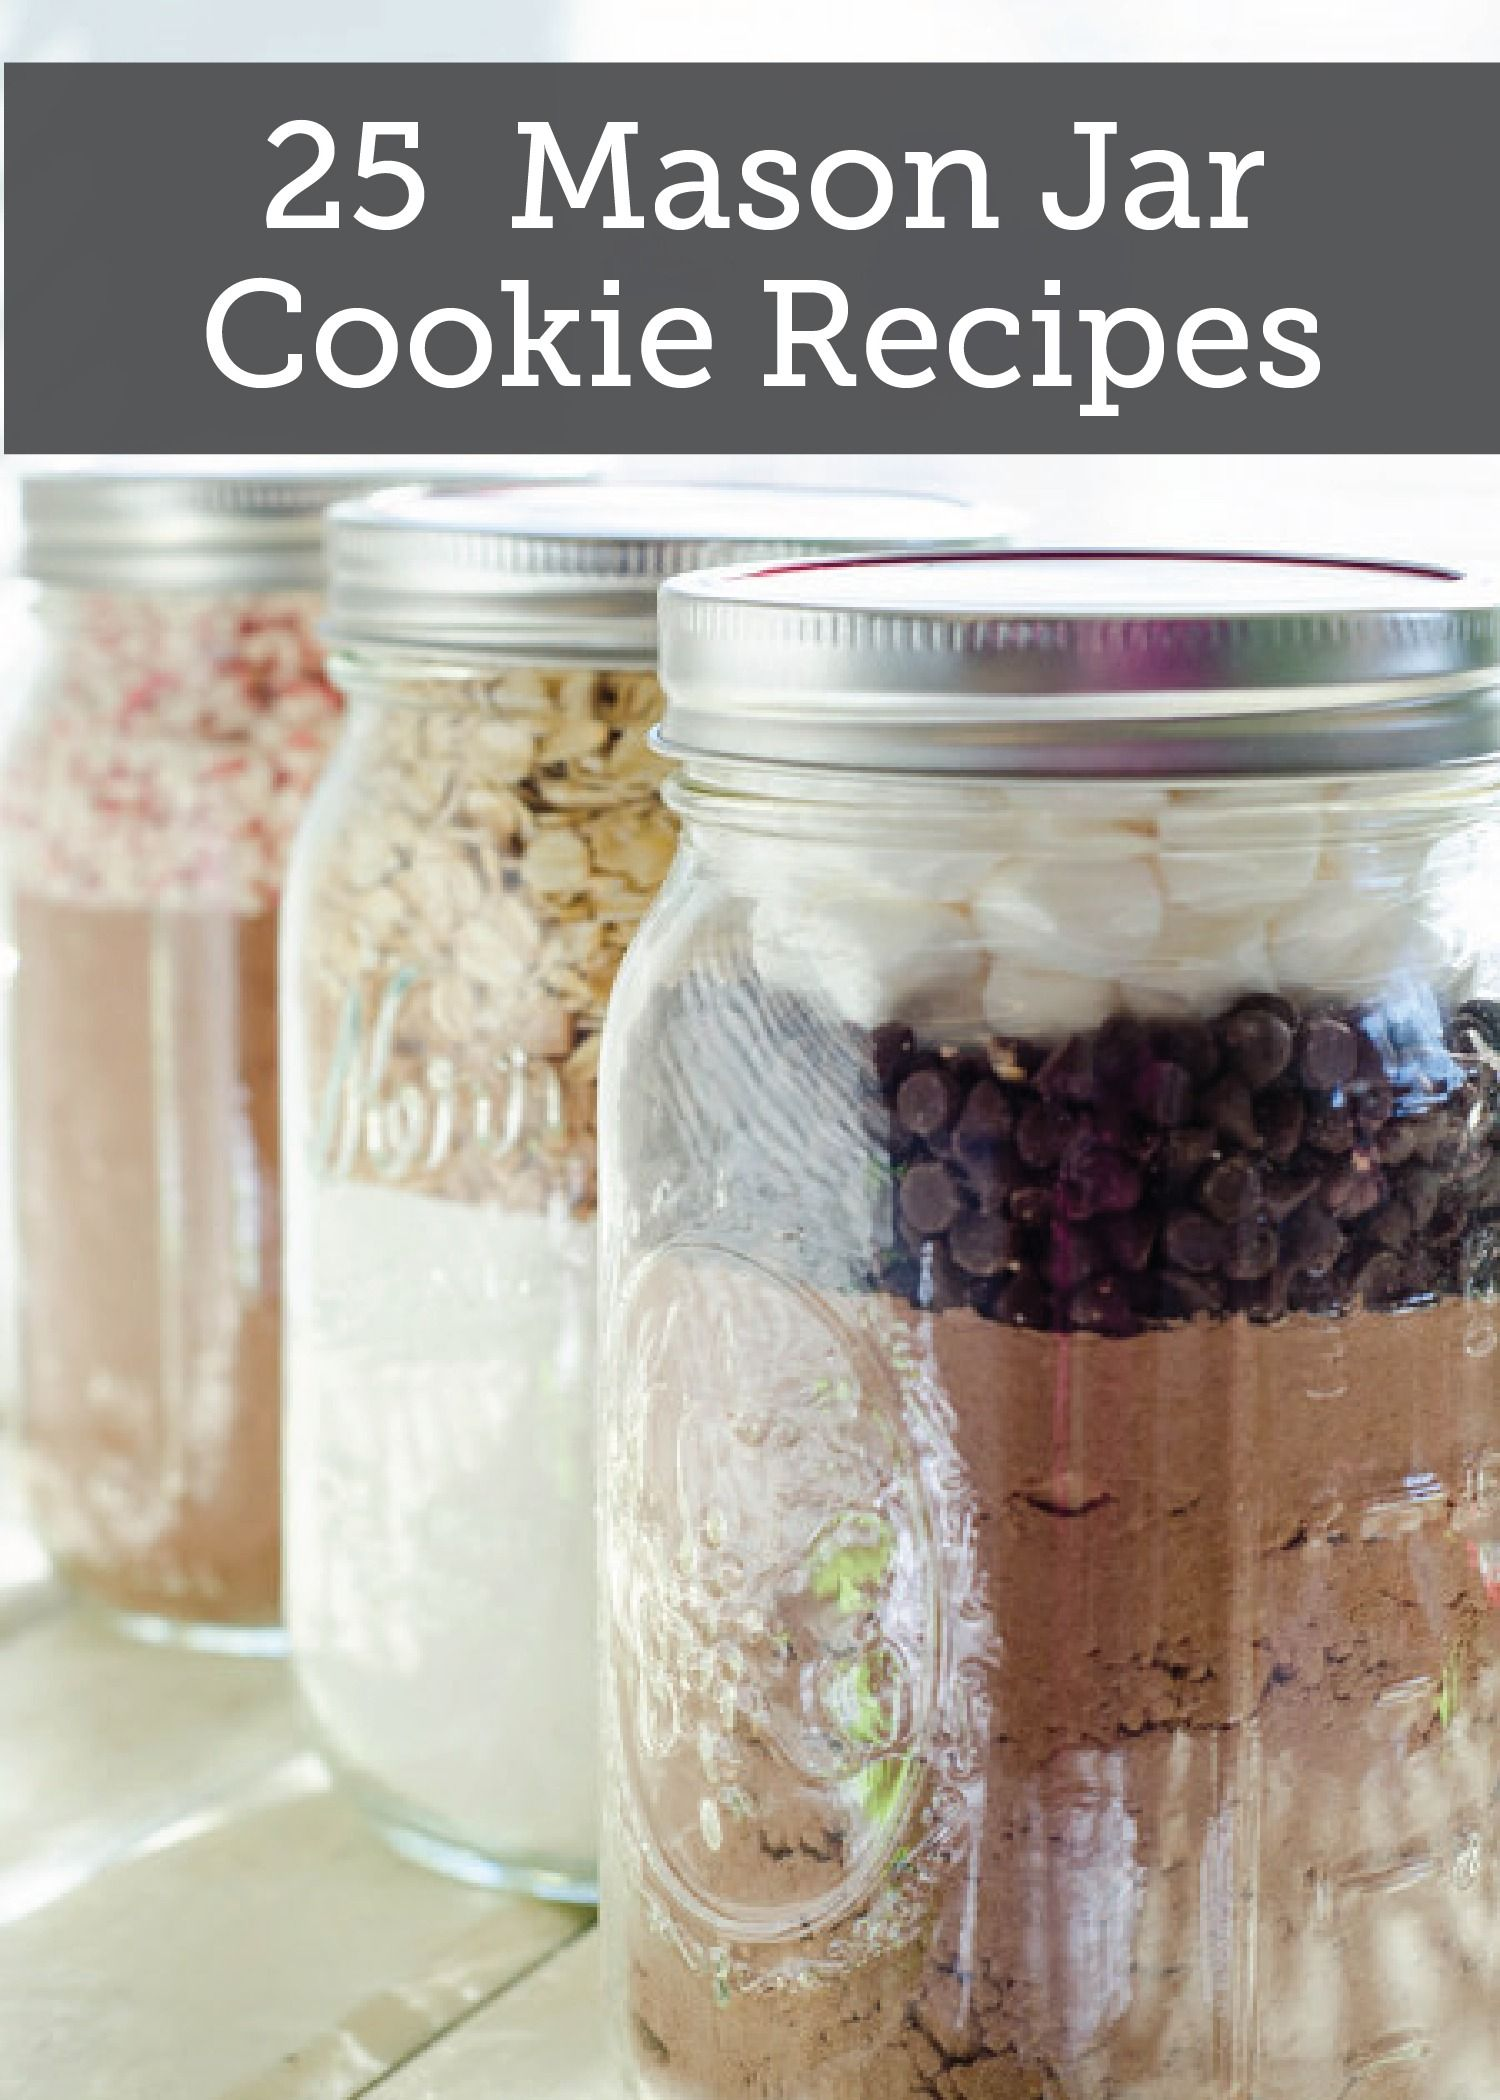 Nice Cookie Jars 25 Mason Jar Cookie Recipes Diy Gifts Pinterest